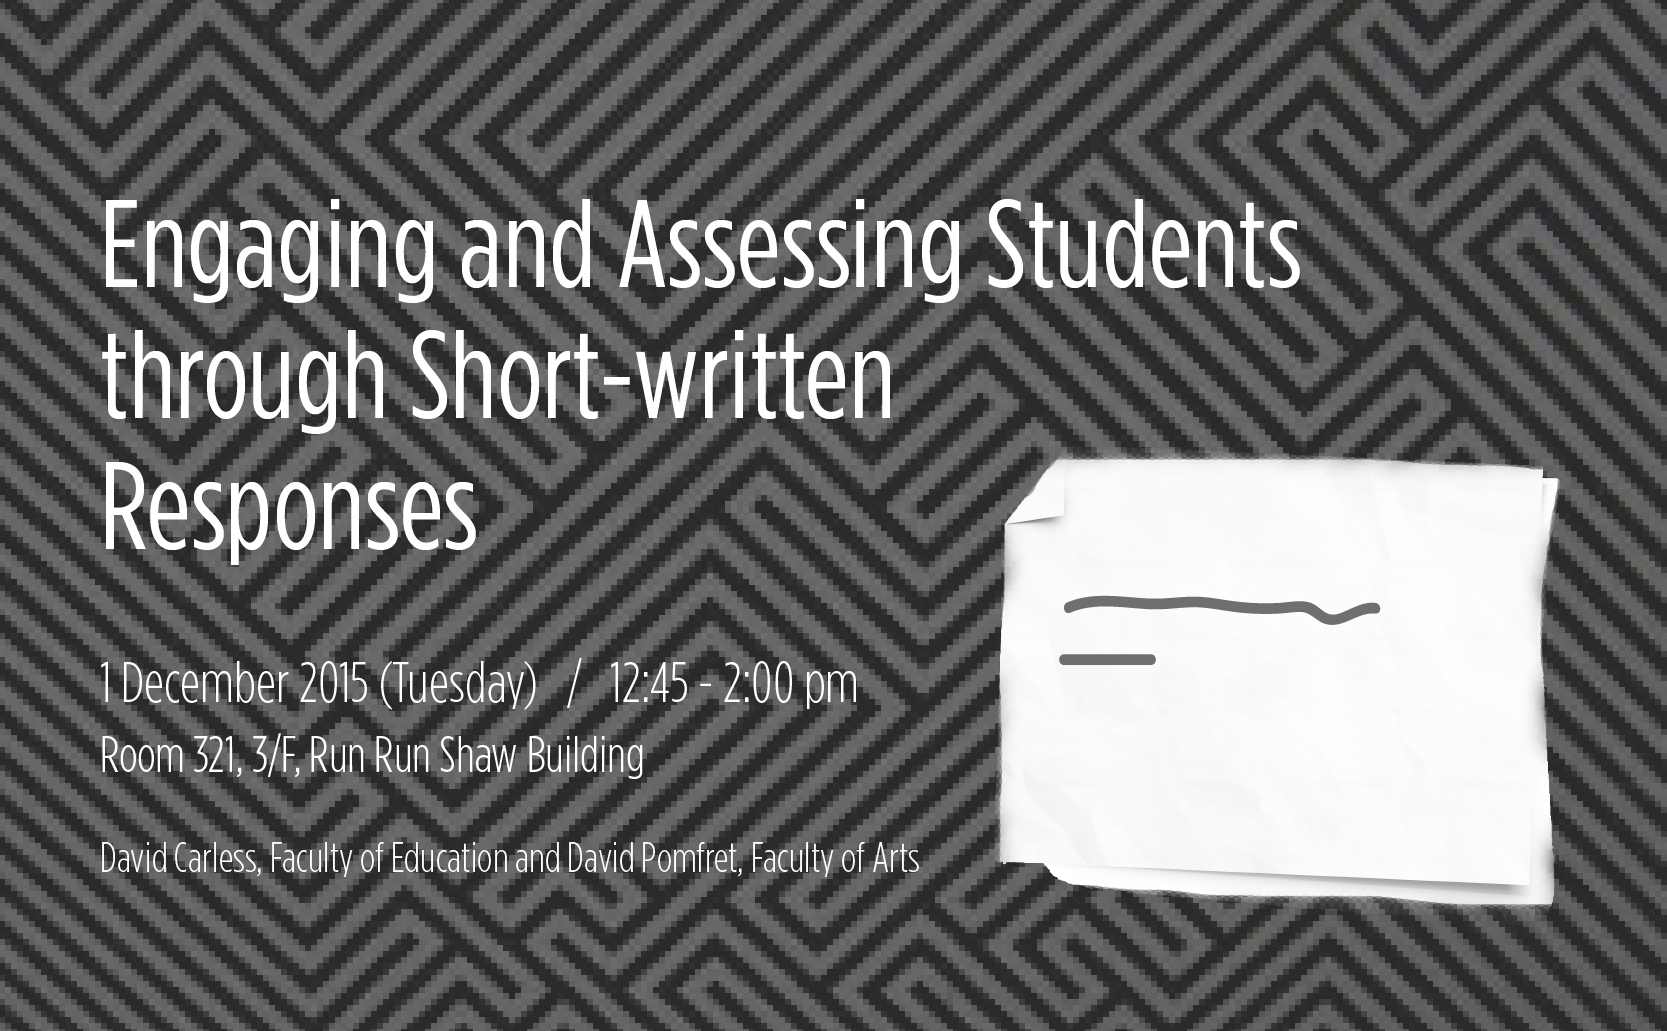 CETL Seminar: Engaging and Assessing Students through Short-written Responses